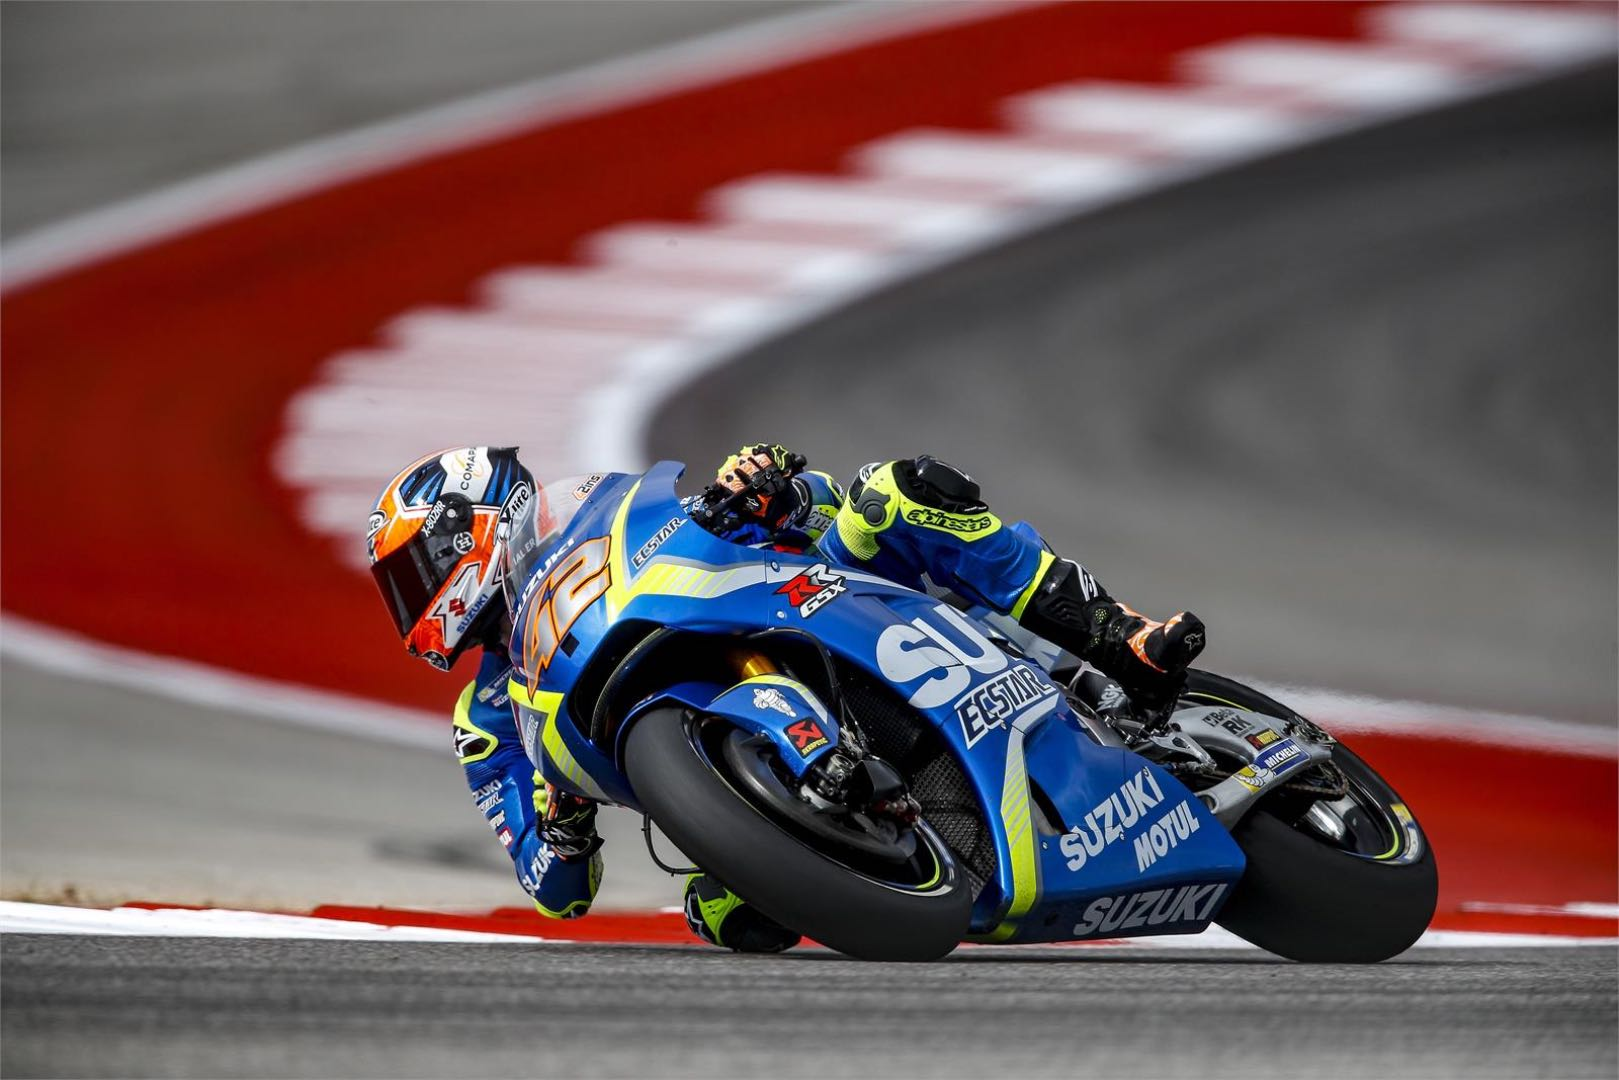 Suzuki MotoGP's Alex Rins Injury Update: Titanium Installed, Rehab Begins